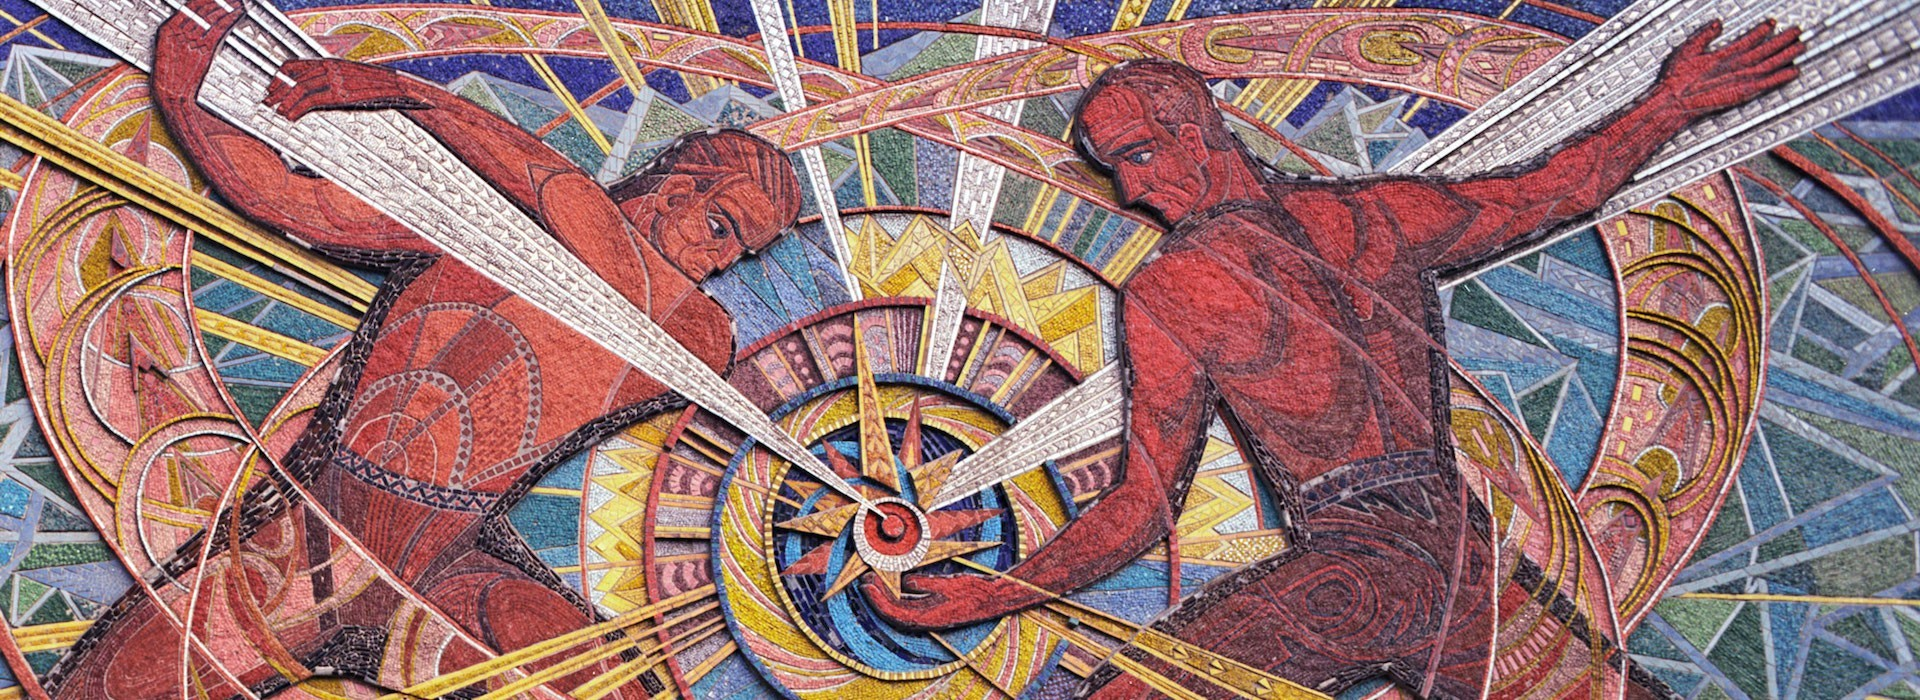 Party pieces: admiring Kiev's utopian socialist mosaics, before they disappear